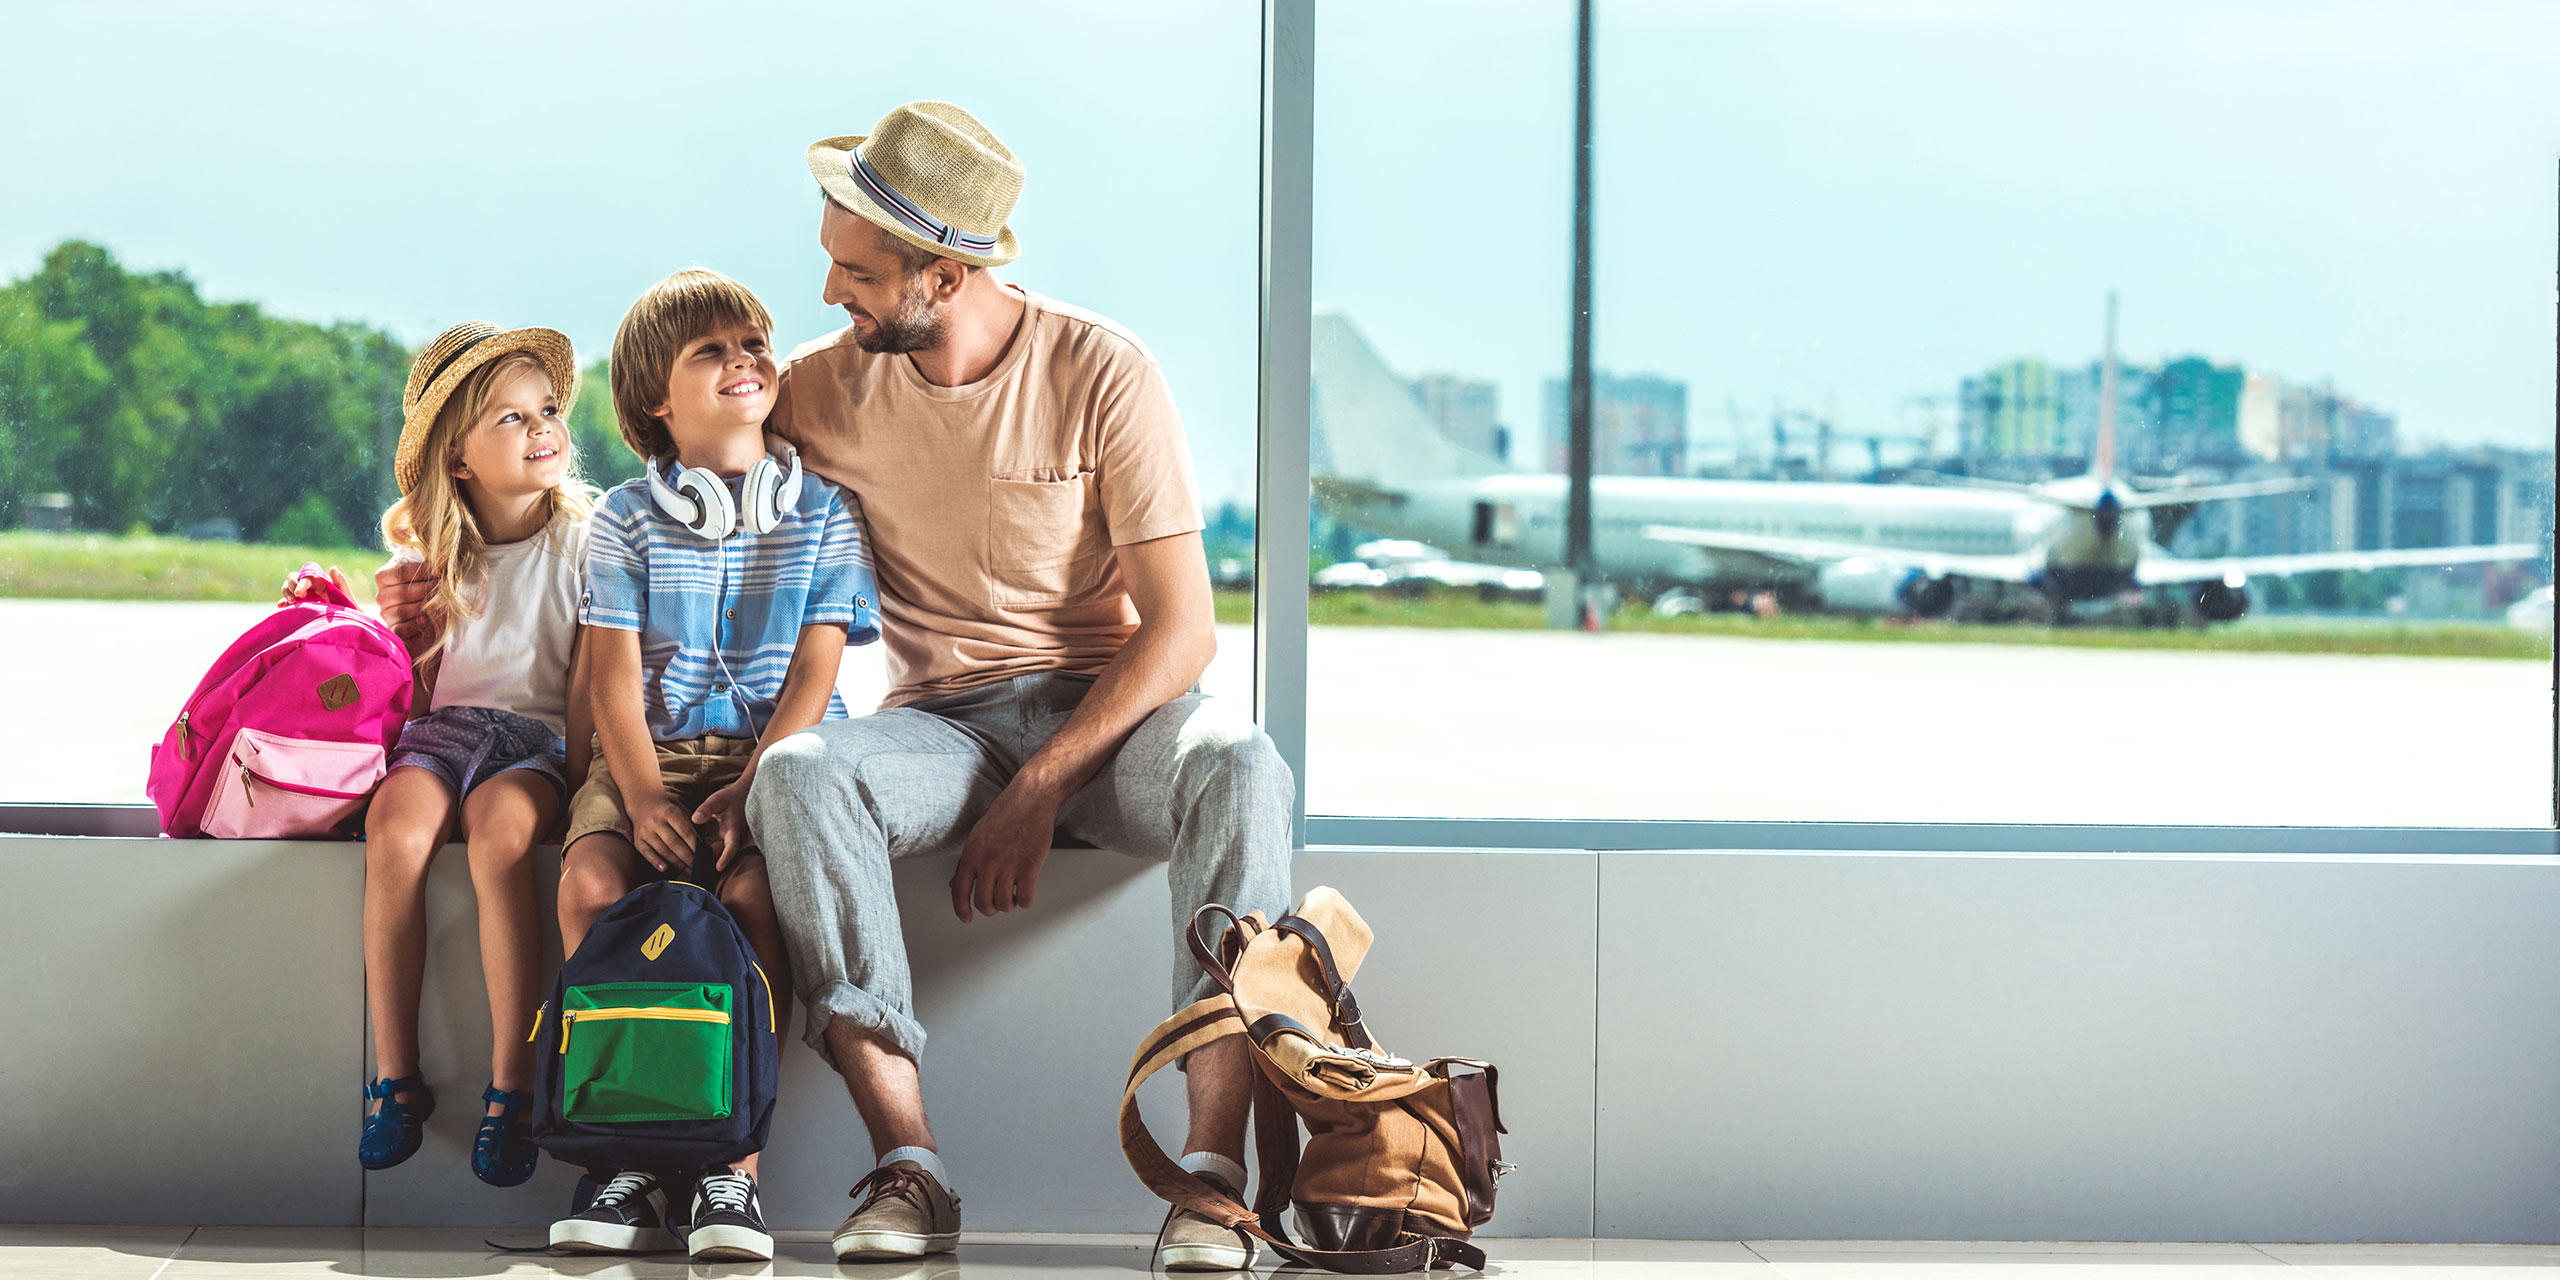 Father and Kids With Carry-On Bags at Airport; Courtesy of LightField Studios/Shutterstock.com